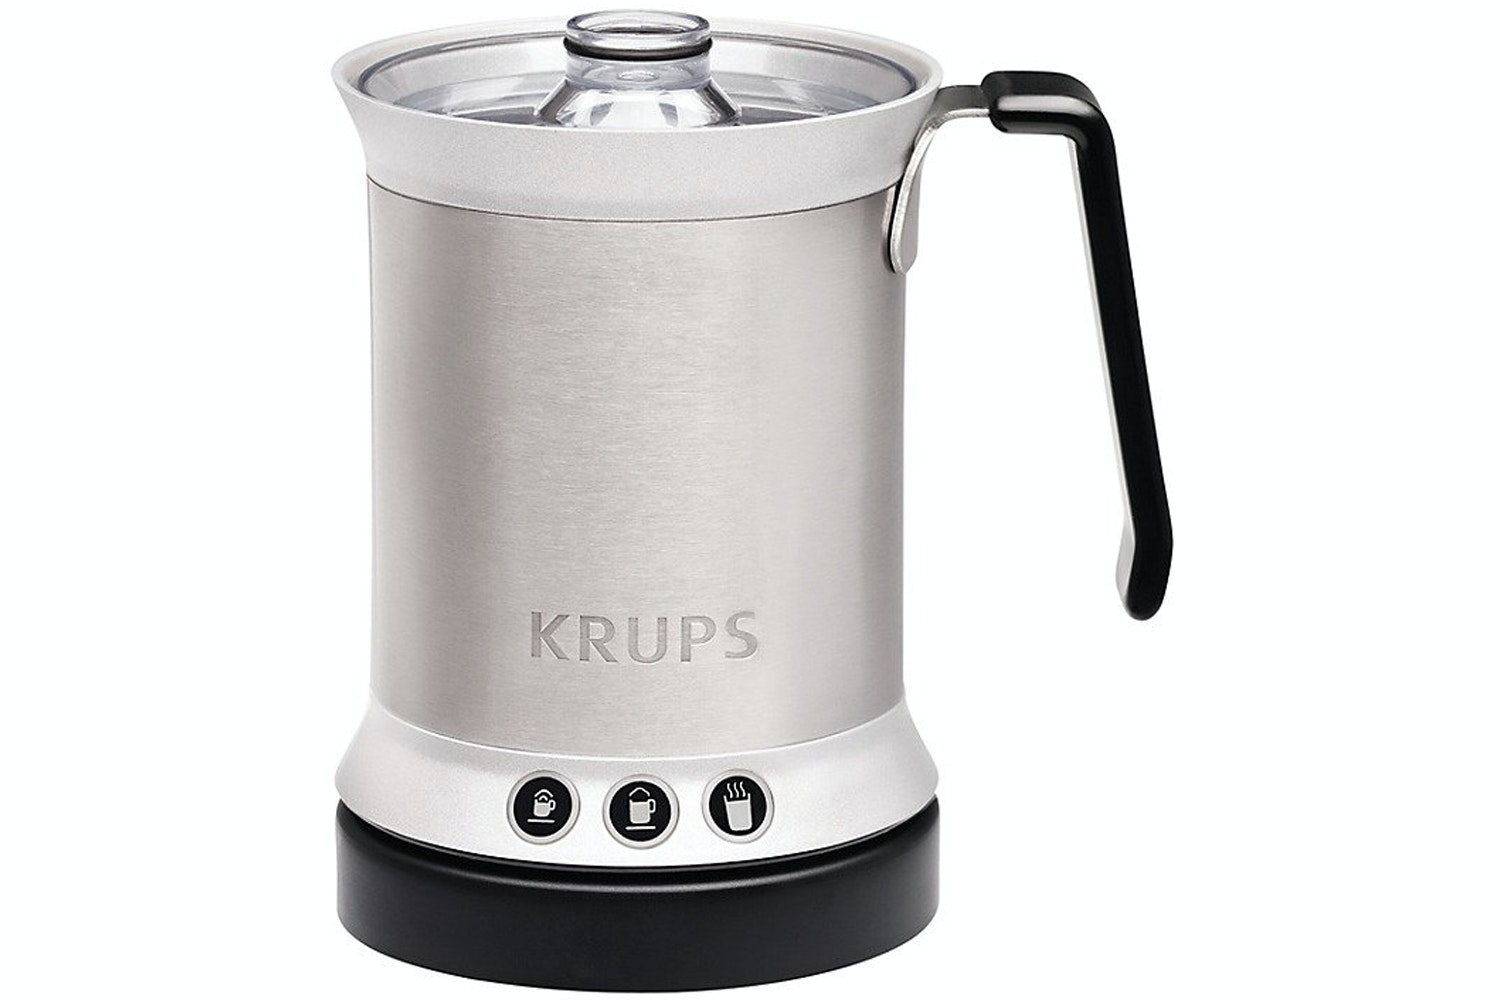 Krups Automatic Milk Frother | XL200044 | Stainless Steel